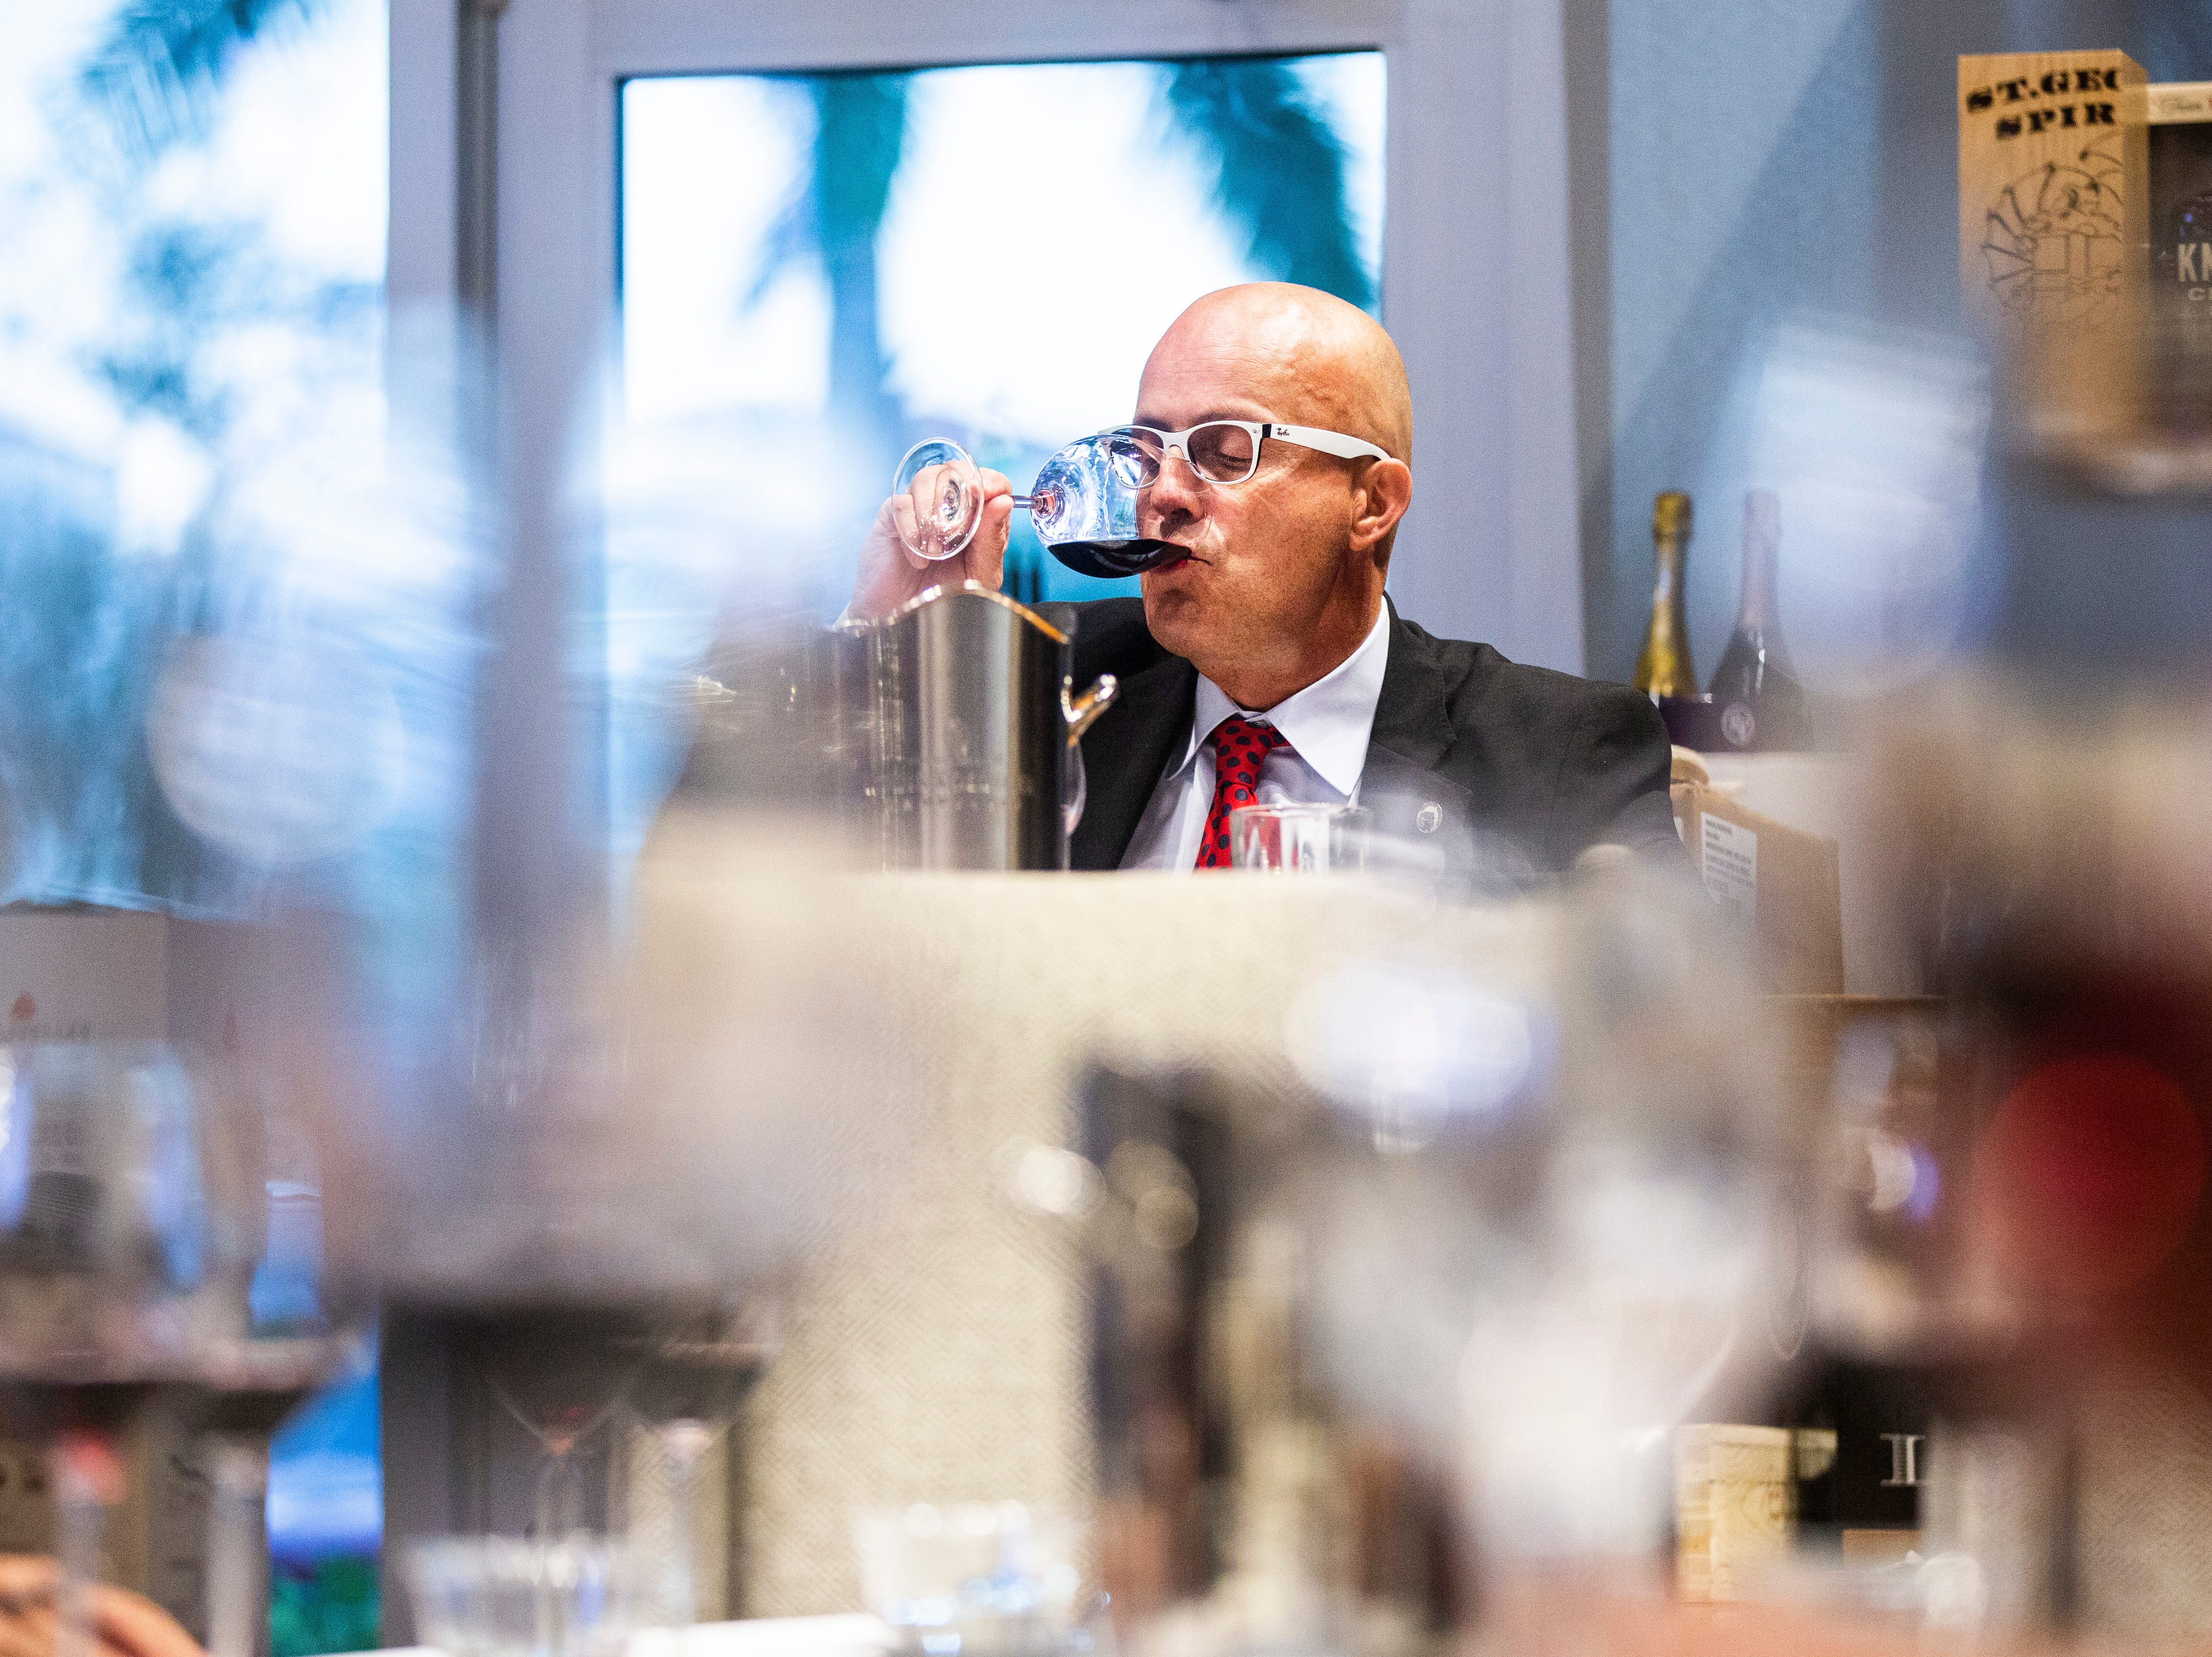 Eric Blais, the wine director and certified sommelier at USS Nemo, tastes a red wine while competing in the Somms Showdown, organized by Break Thru Beverage Group, at The Cave Bistro & Wine Bar in Naples on Tuesday, Nov. 13, 2018.